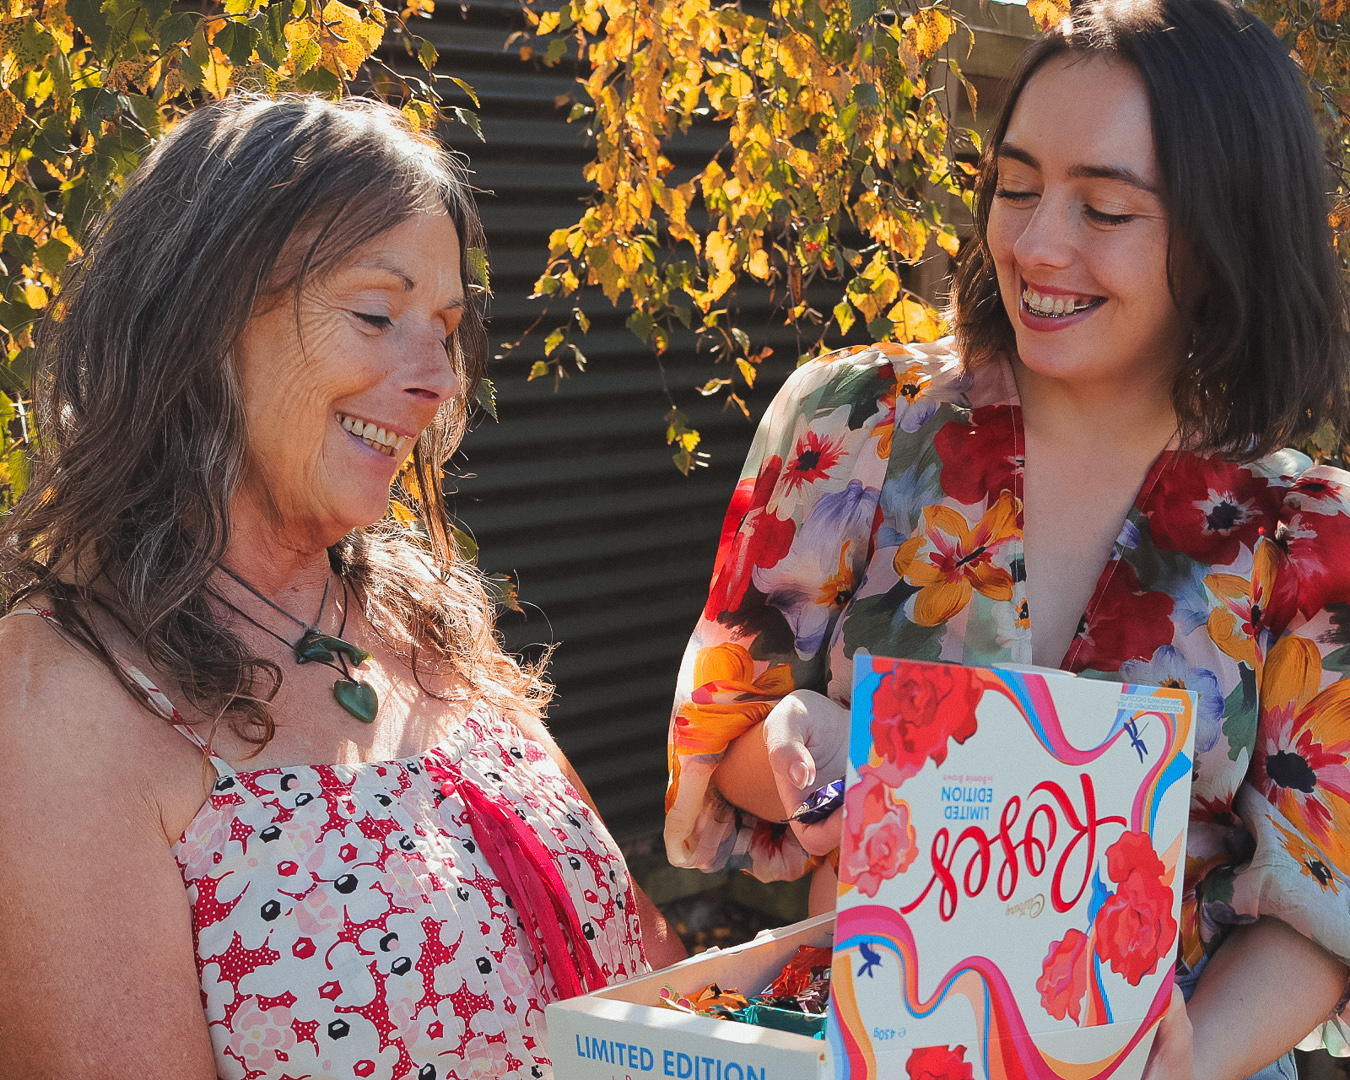 Bonnie Brown on the right showing her mother the new Cadbury Roses box.